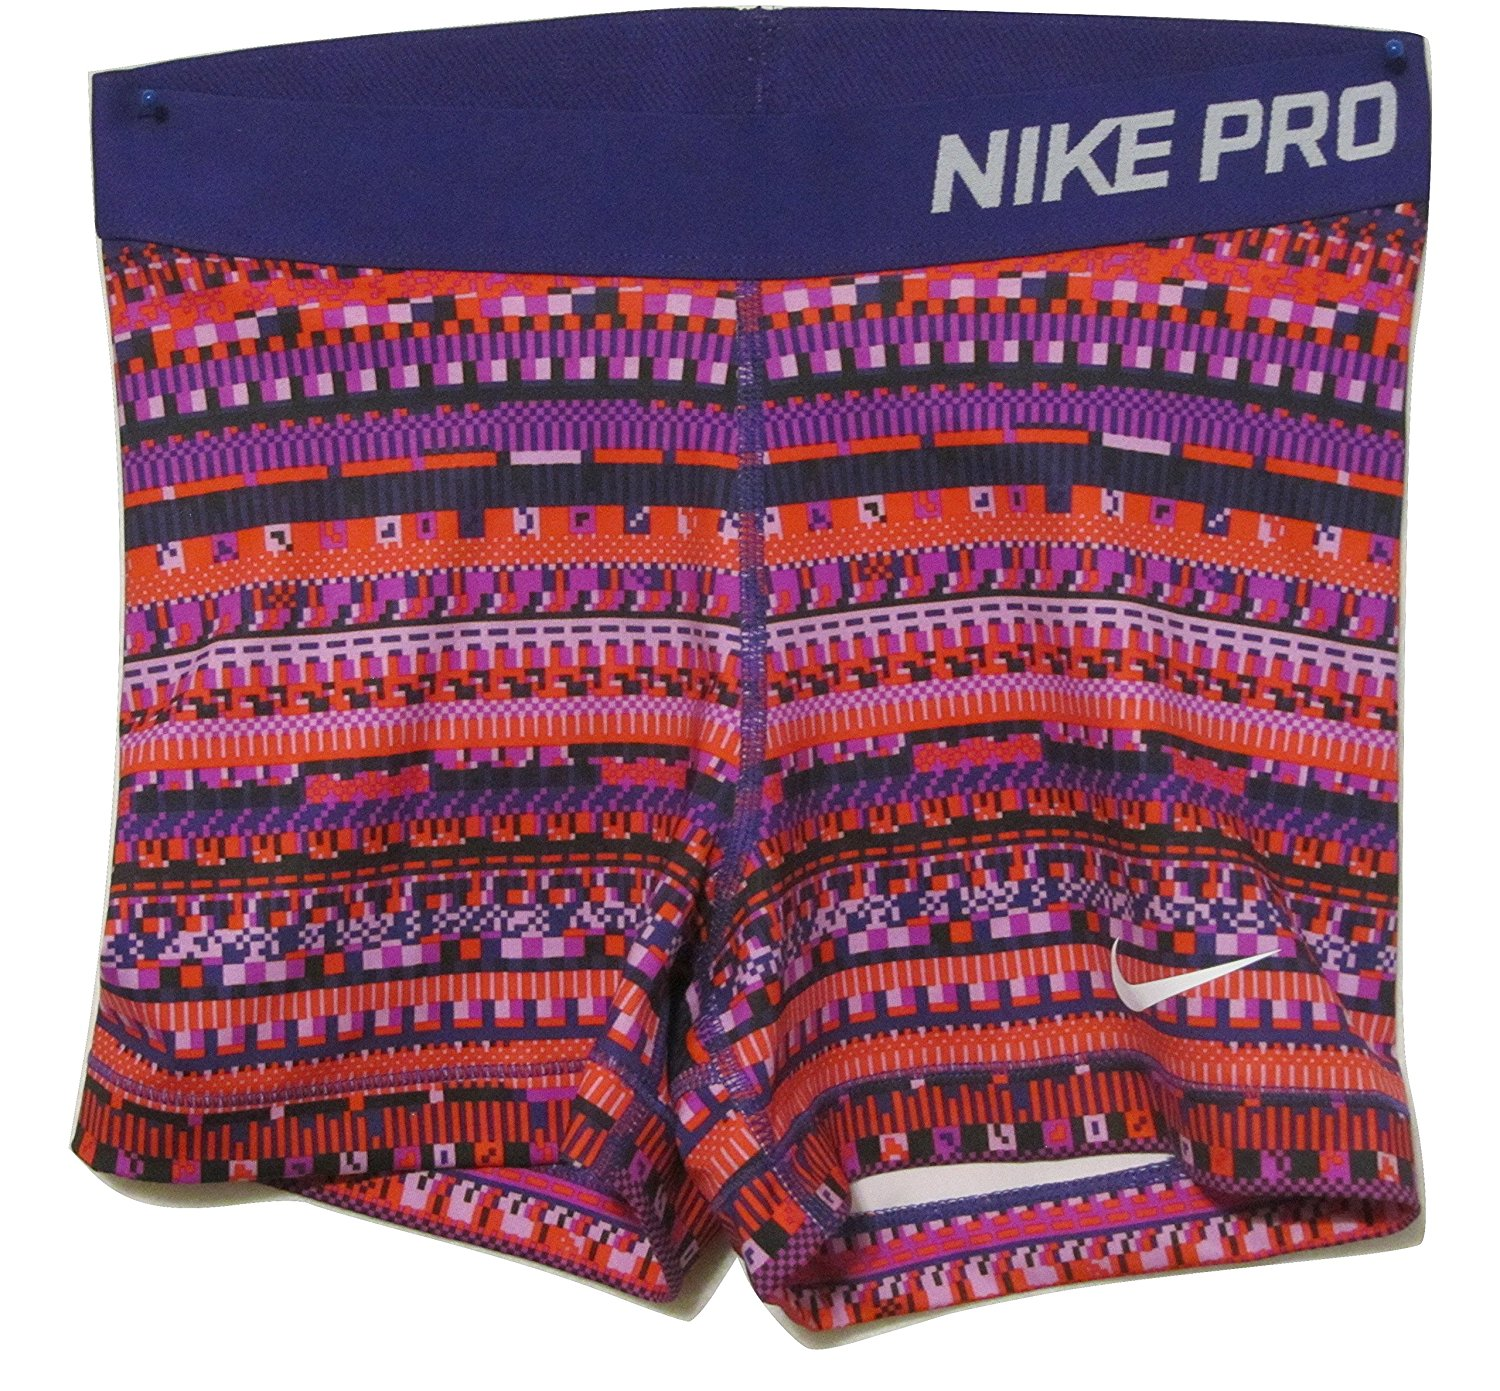 82f86864a Get Quotations · Nike Womens Pro 3 8 Bit Compression Shorts (XS X 3)